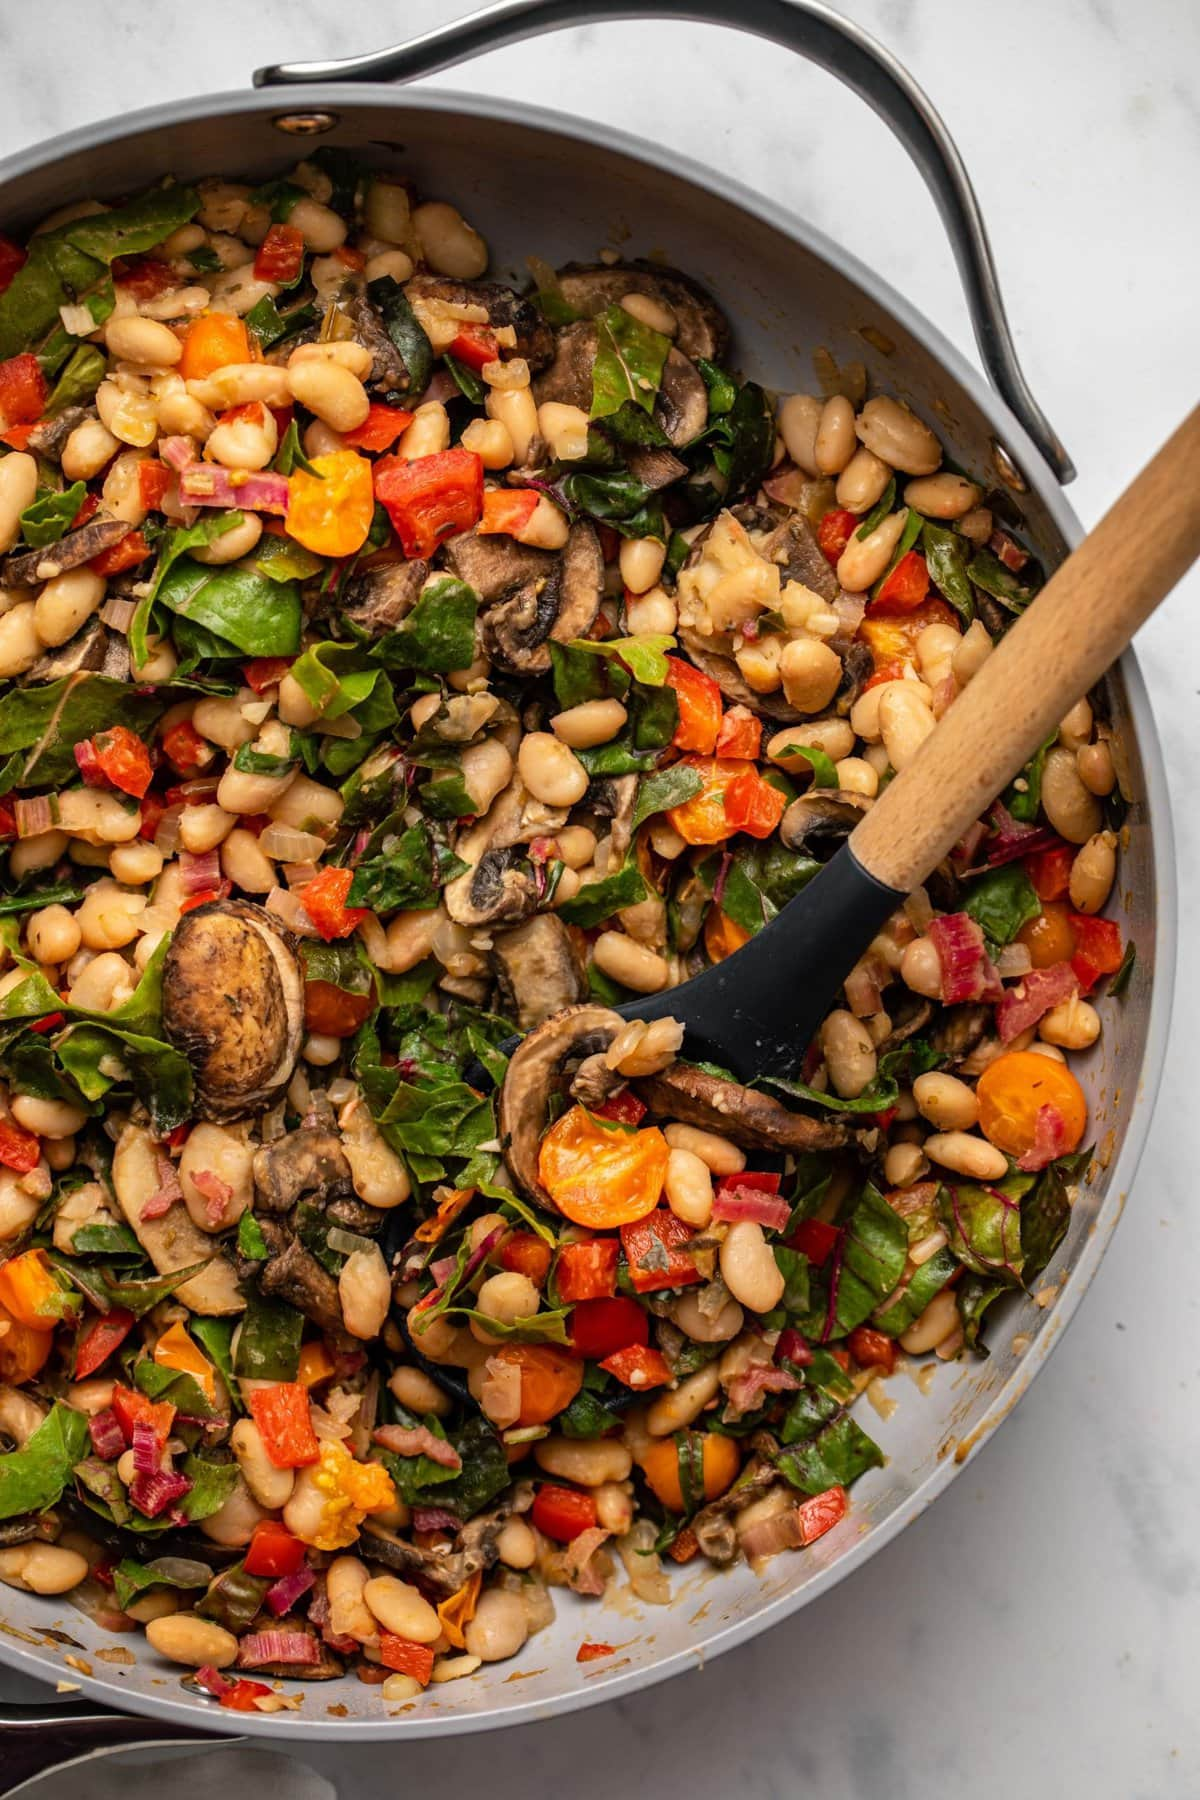 White bean stir fry with vegetables in large sauté pan with wooden spoon